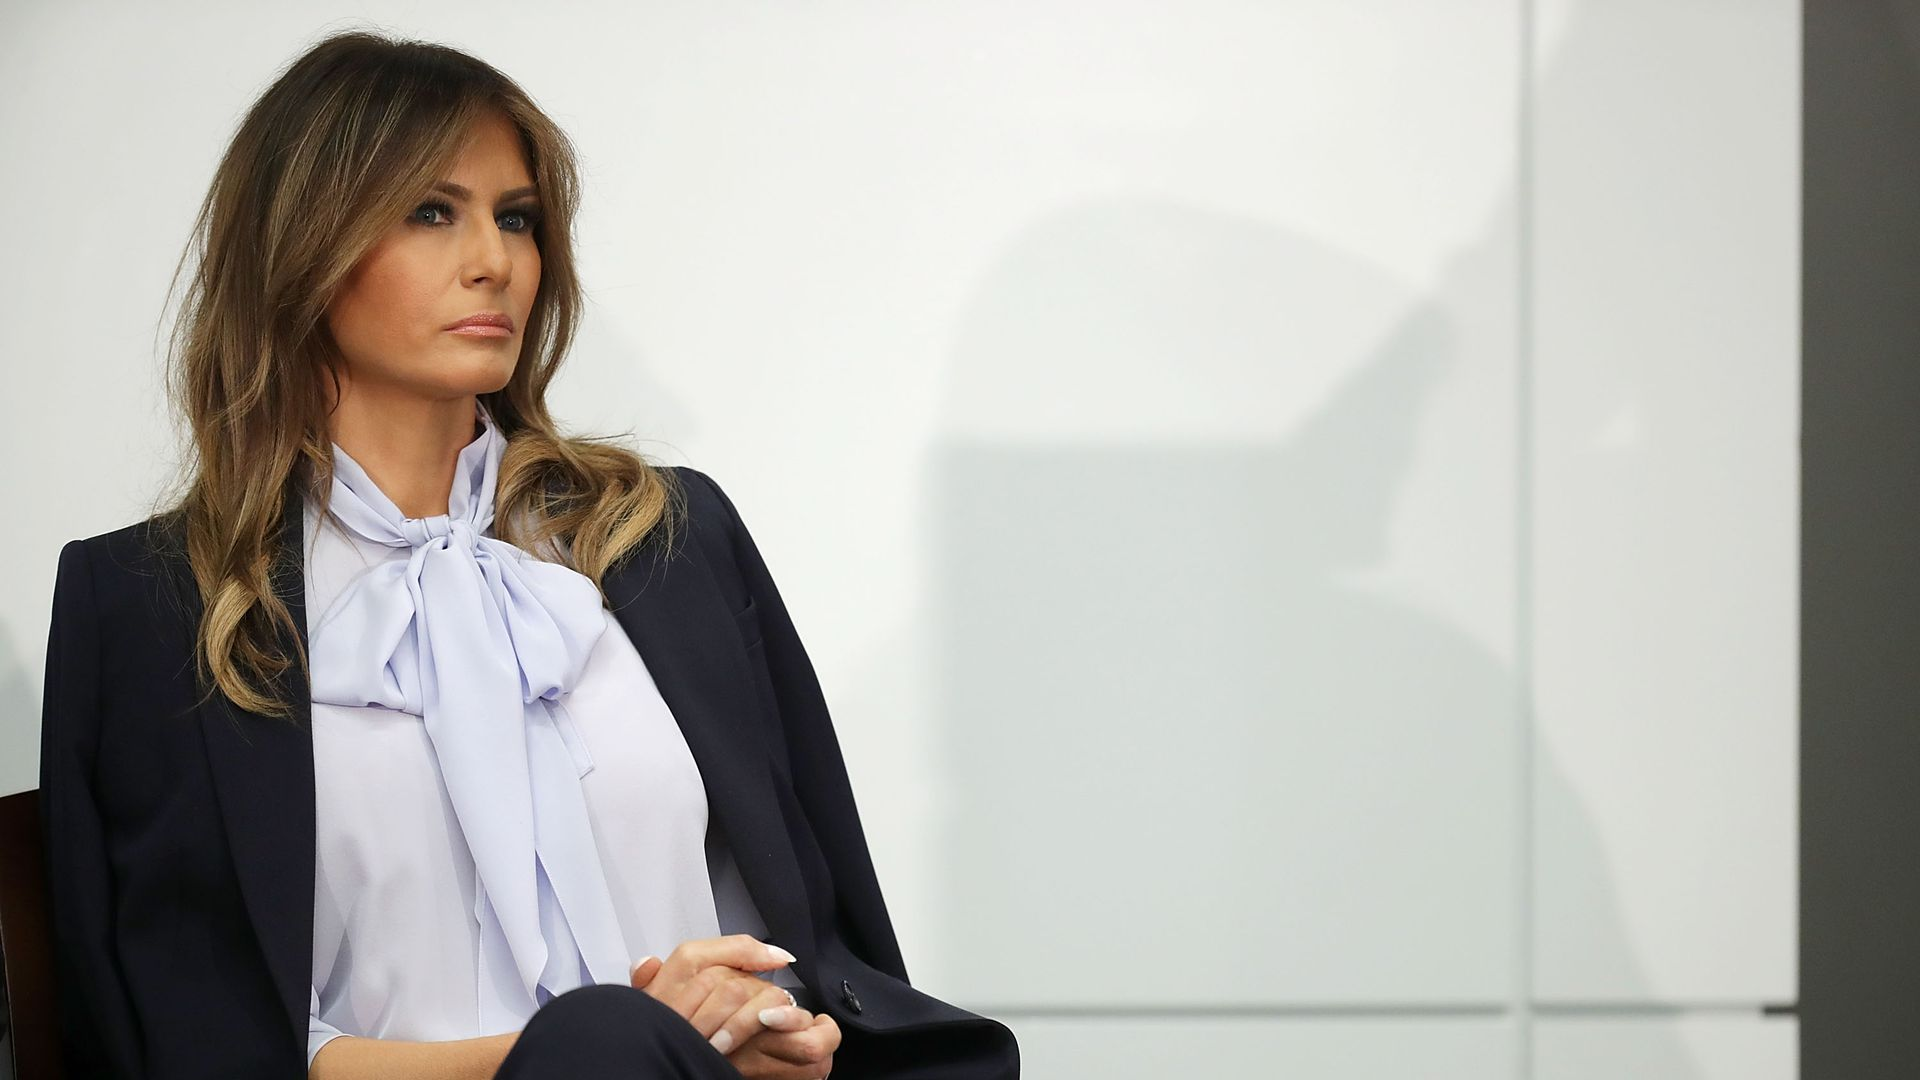 Melania Trump sitting in a chair on stage with a serious expression